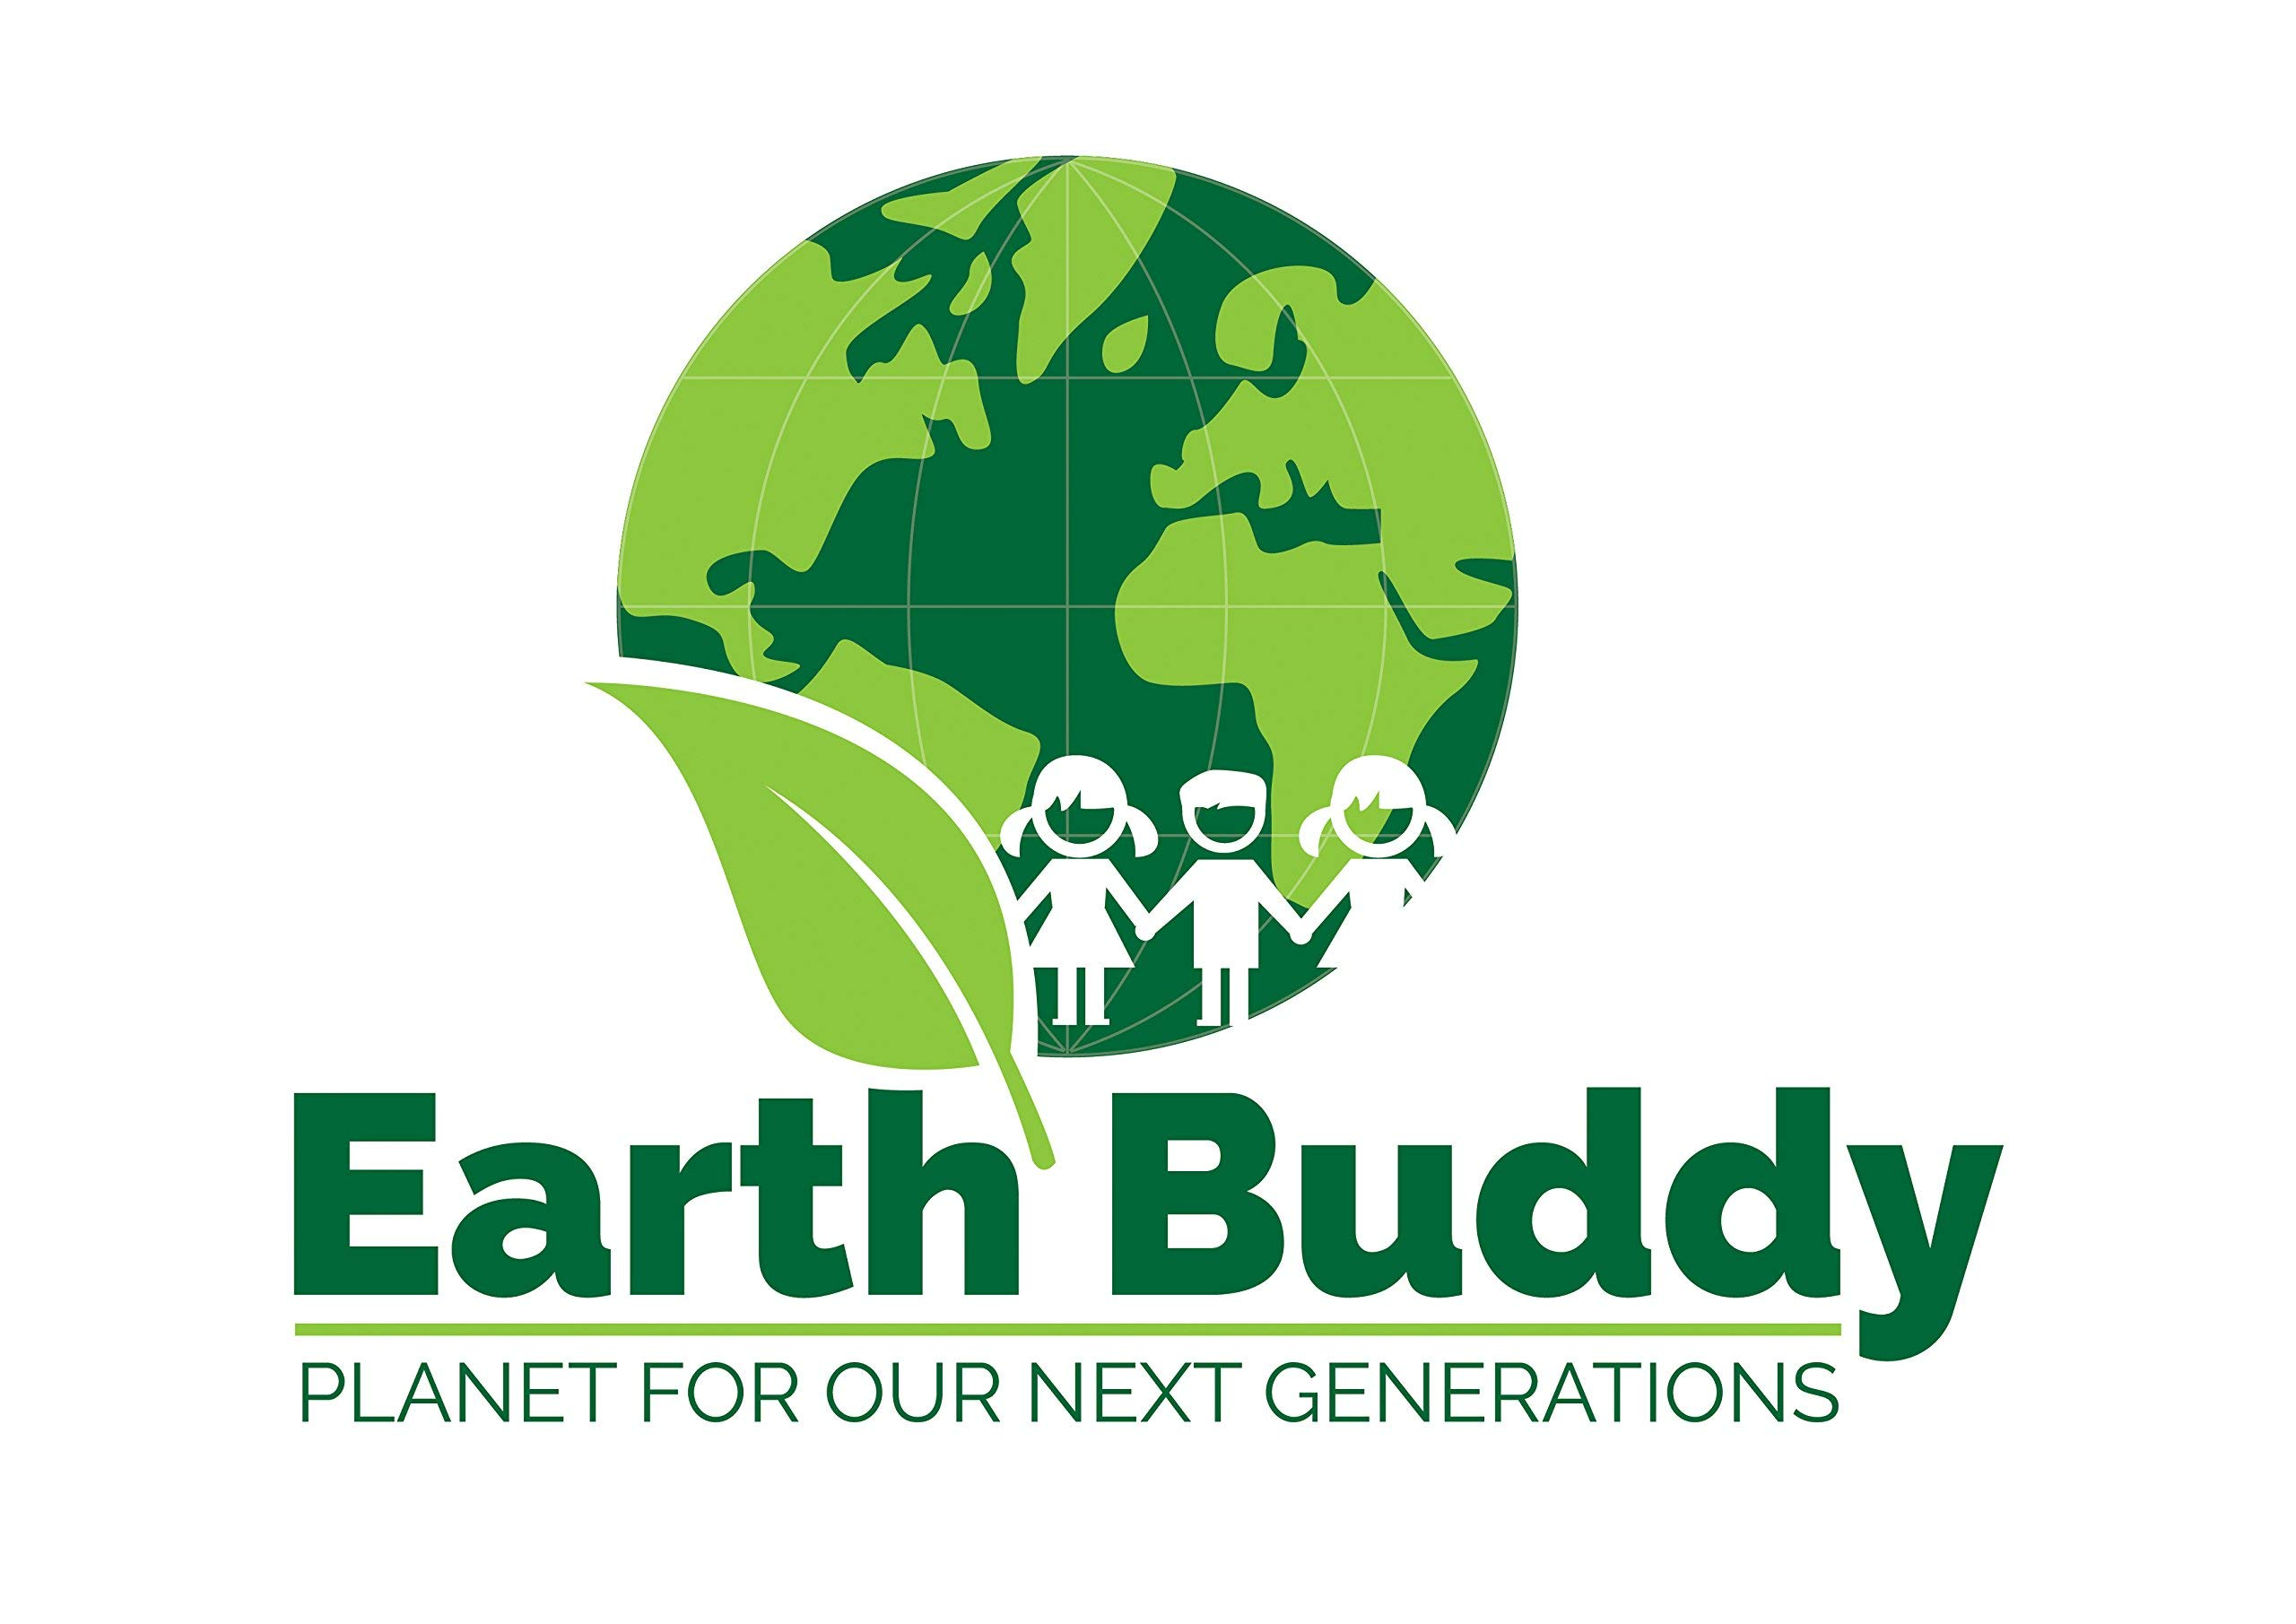 Earth Buddy 125 PCS Biodegradable White Paper Straw. Eco Friendly Drinking Straw for Juice, Smoothie, Fruit Drinks, Shakes that will last at least 24 hrs of use (White Paper Straw, 125)